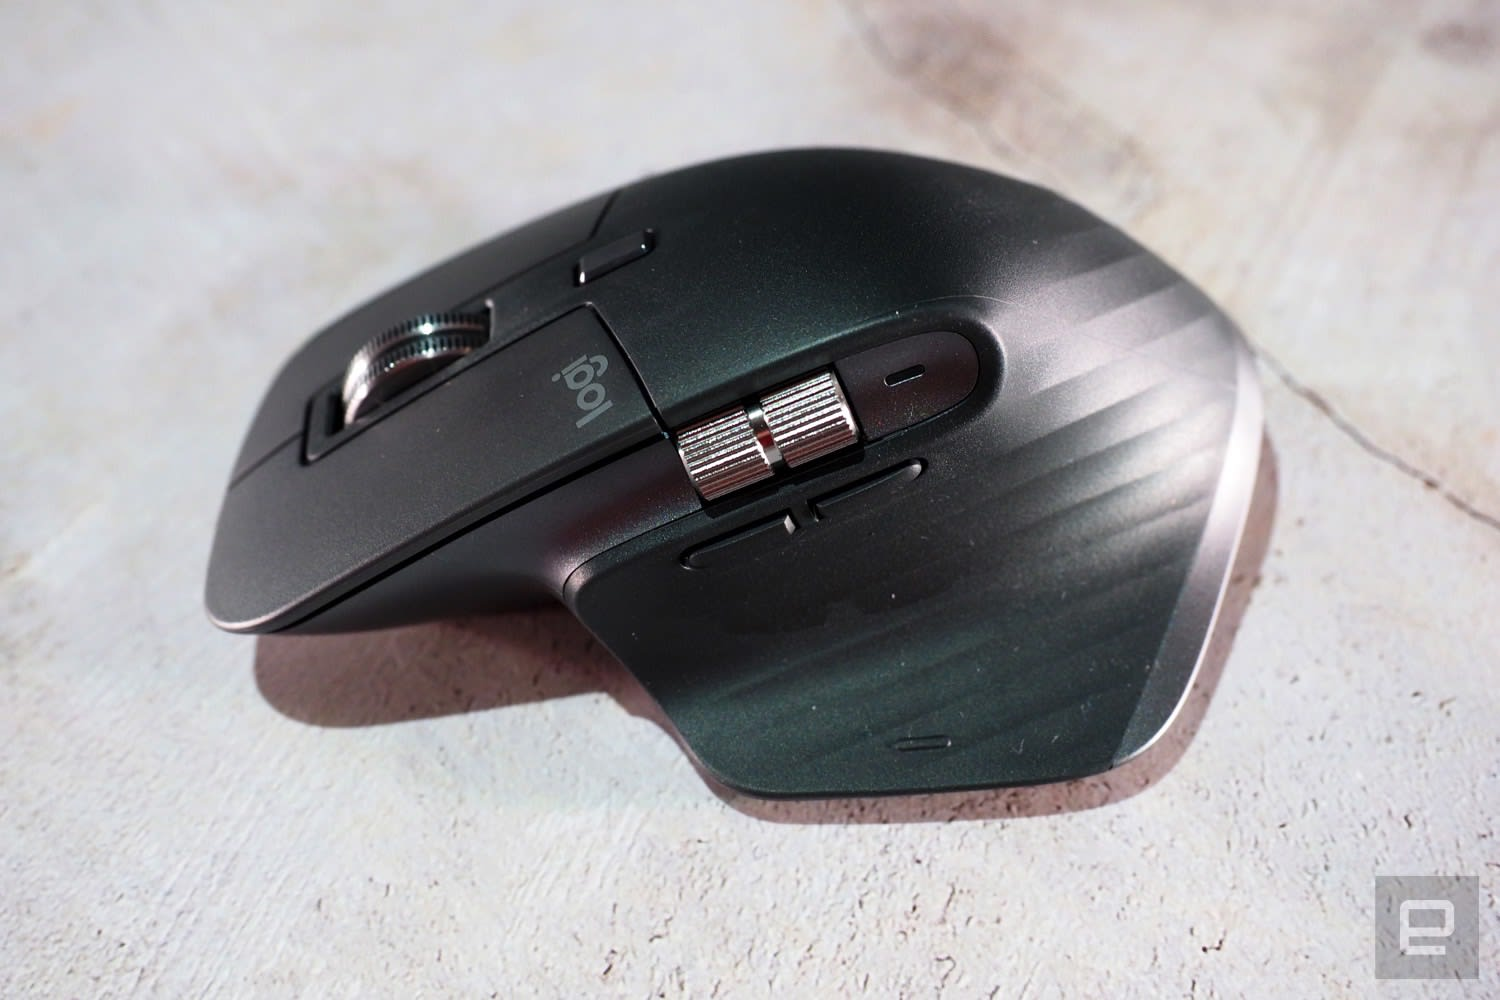 Logitech's new MX Master 3 employs magnets for a better scroll